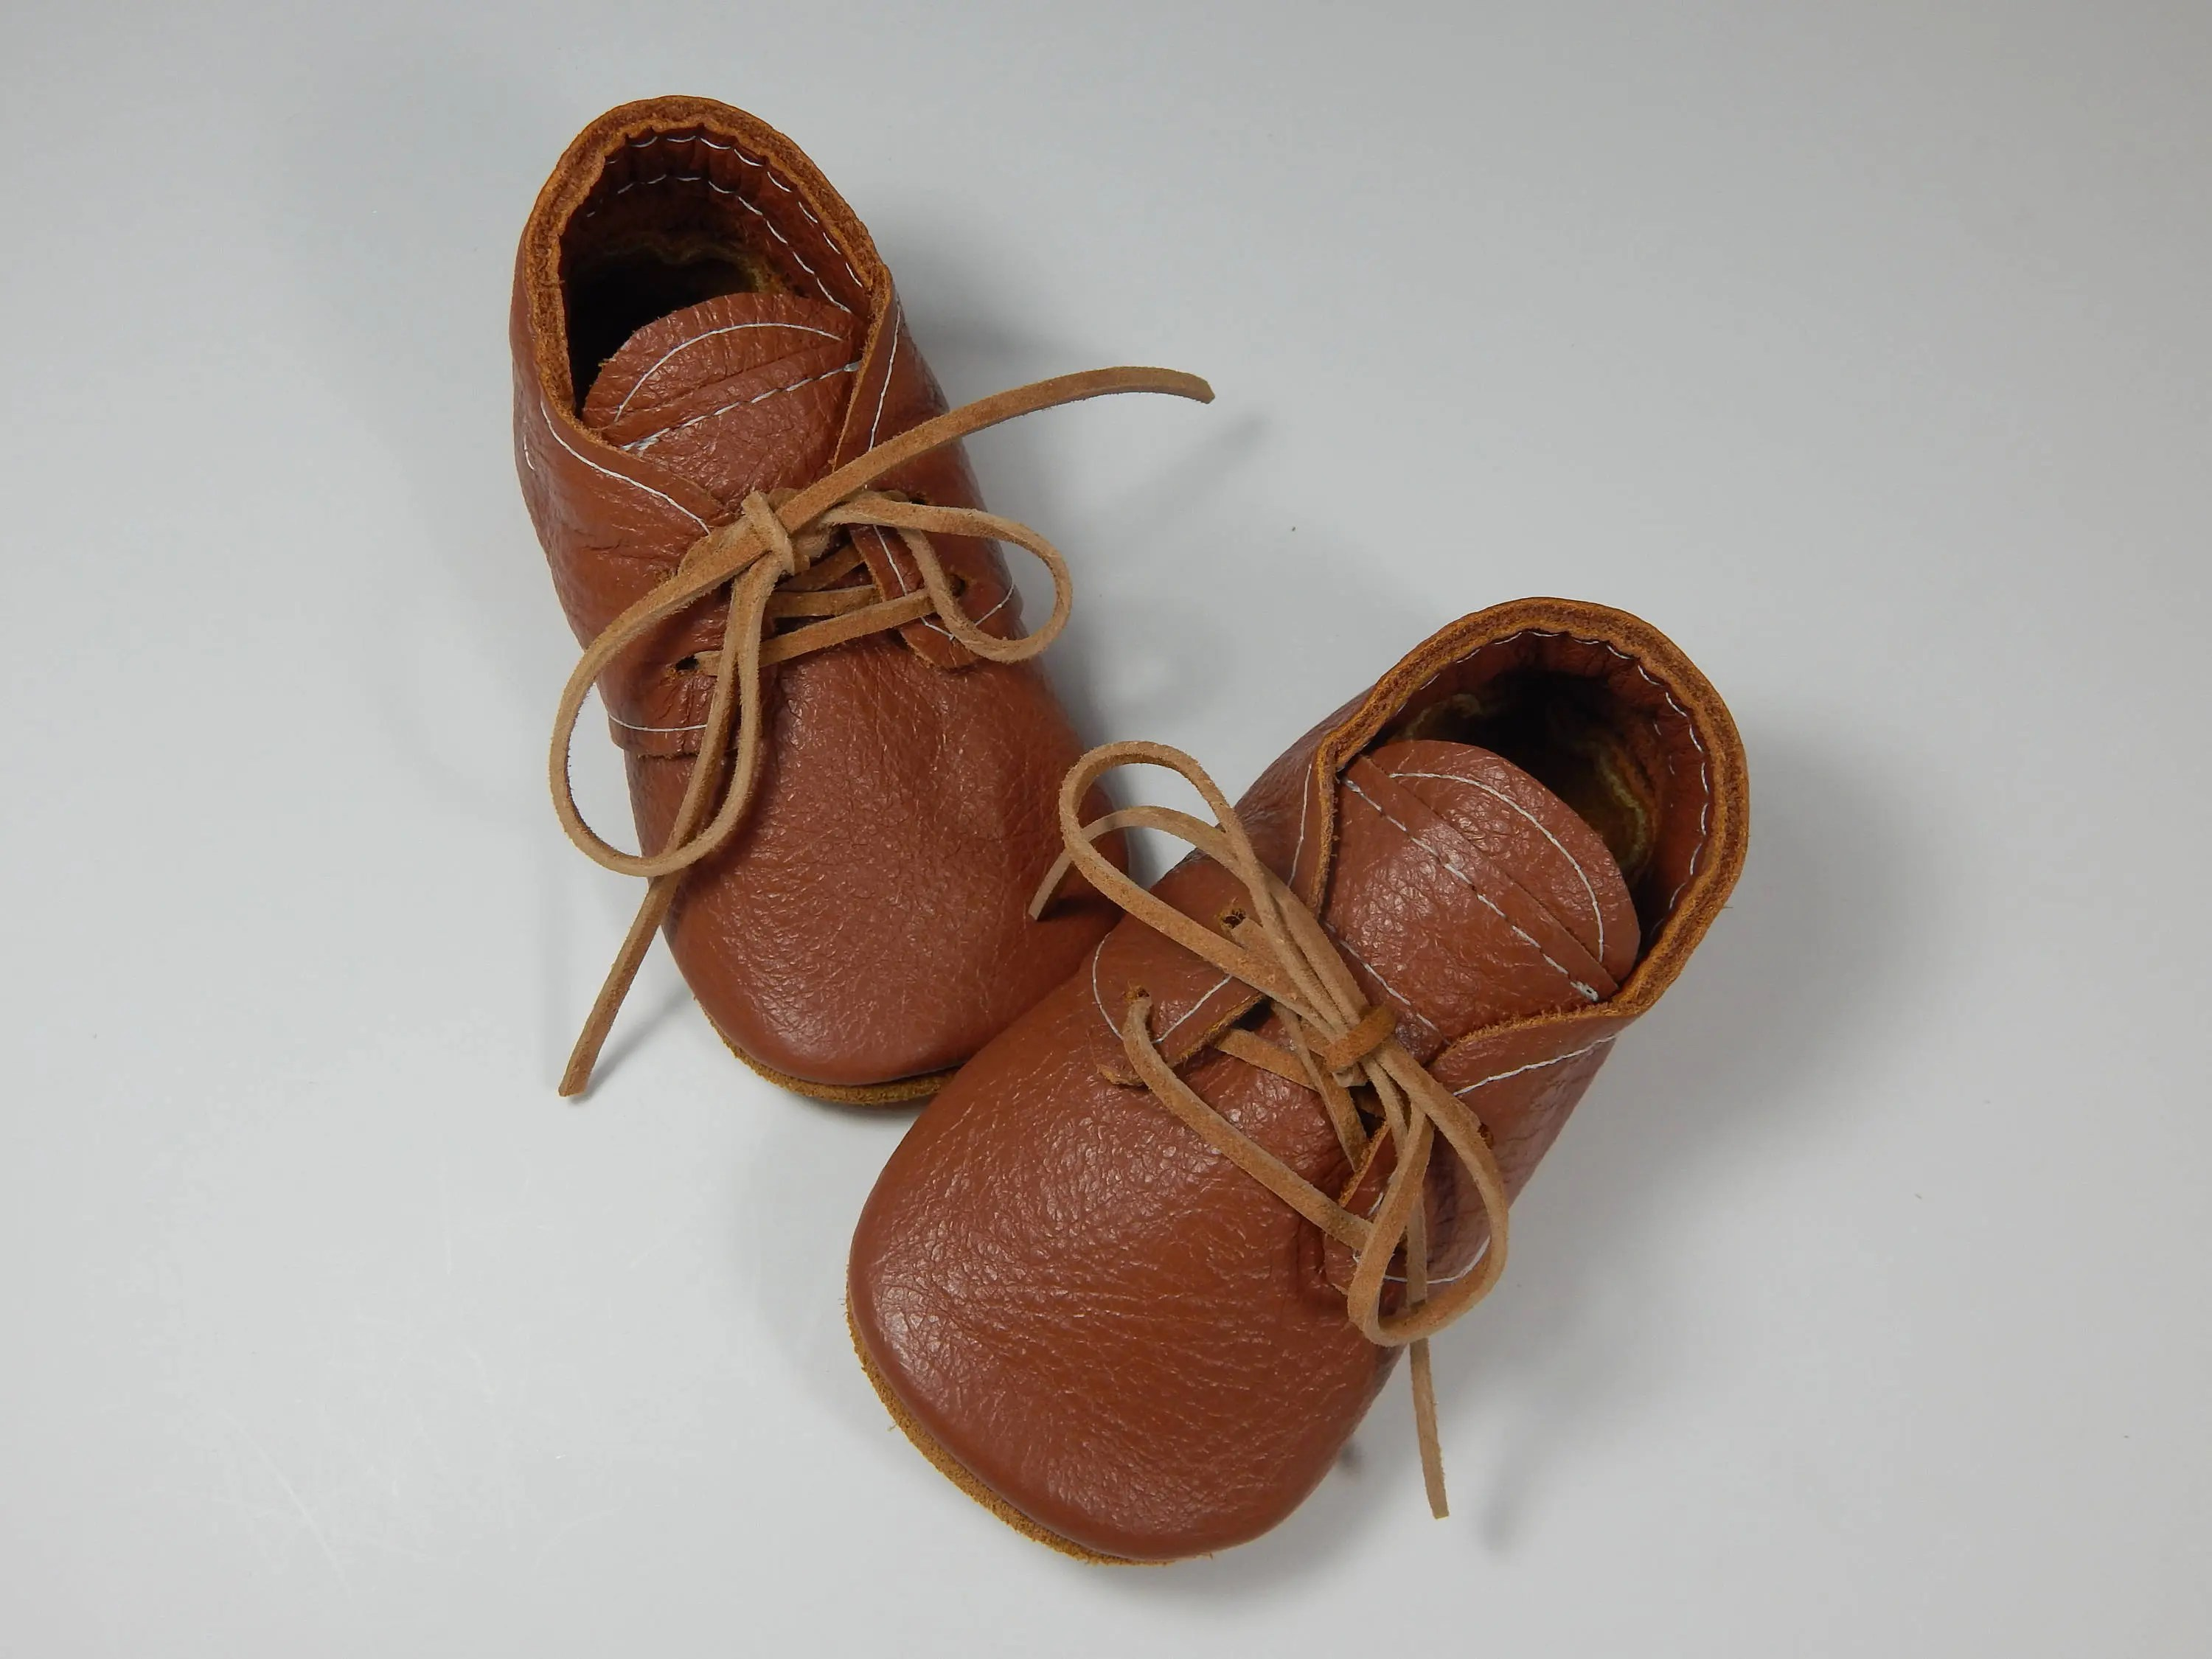 b14a5d8d Baby Shoes Girls Oxfords Boys Oxford Girls Leather Shoes Boys Leather Shoes  Toddler Shoes Infant Shoes Baby Boy Shoe Cork Brown Baby Shoes